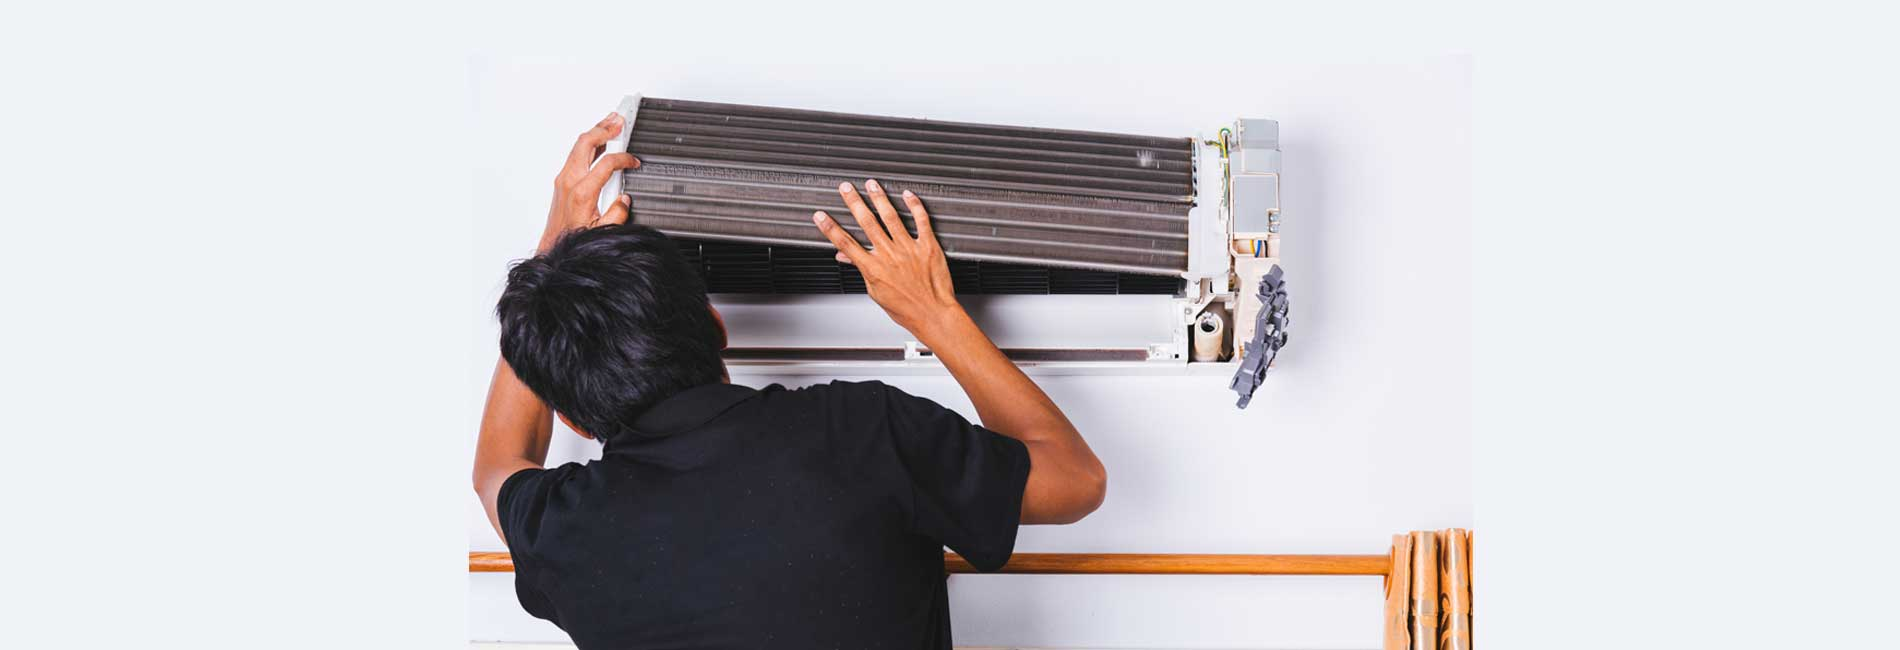 LG AC Repair in Alwarpet